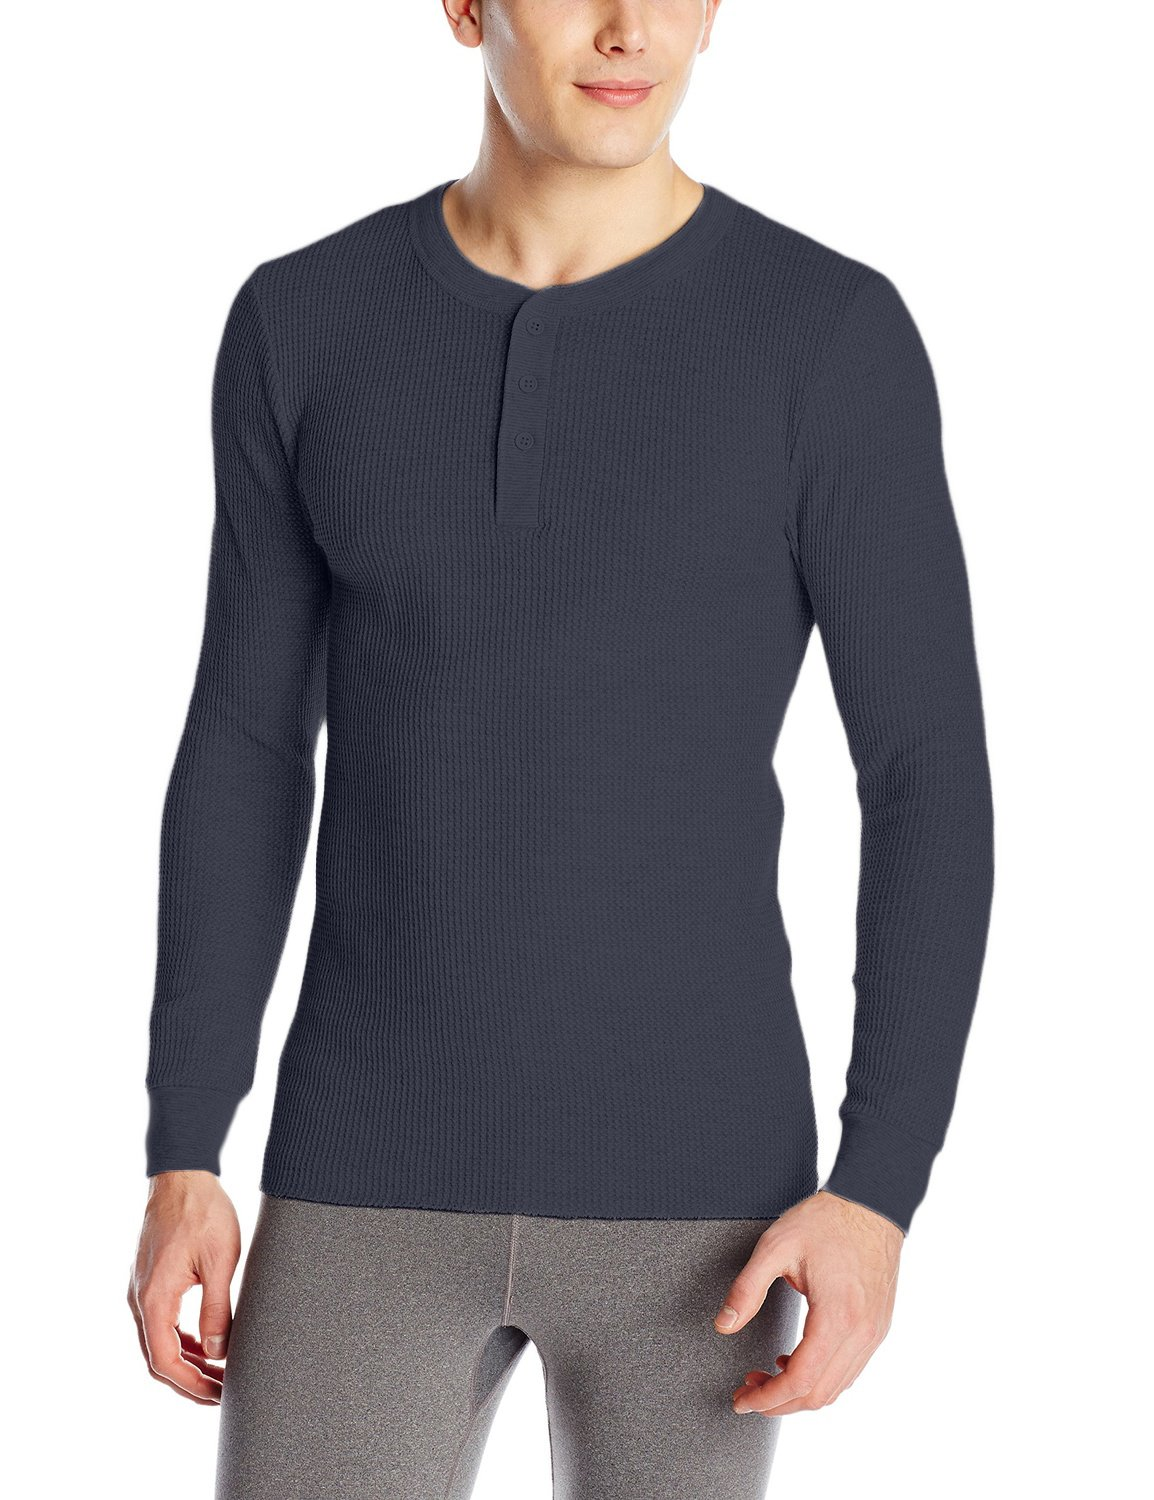 Fruit of the Loom Men's Classics Midweight Waffle Thermal Henley Top (Medium, Navy)